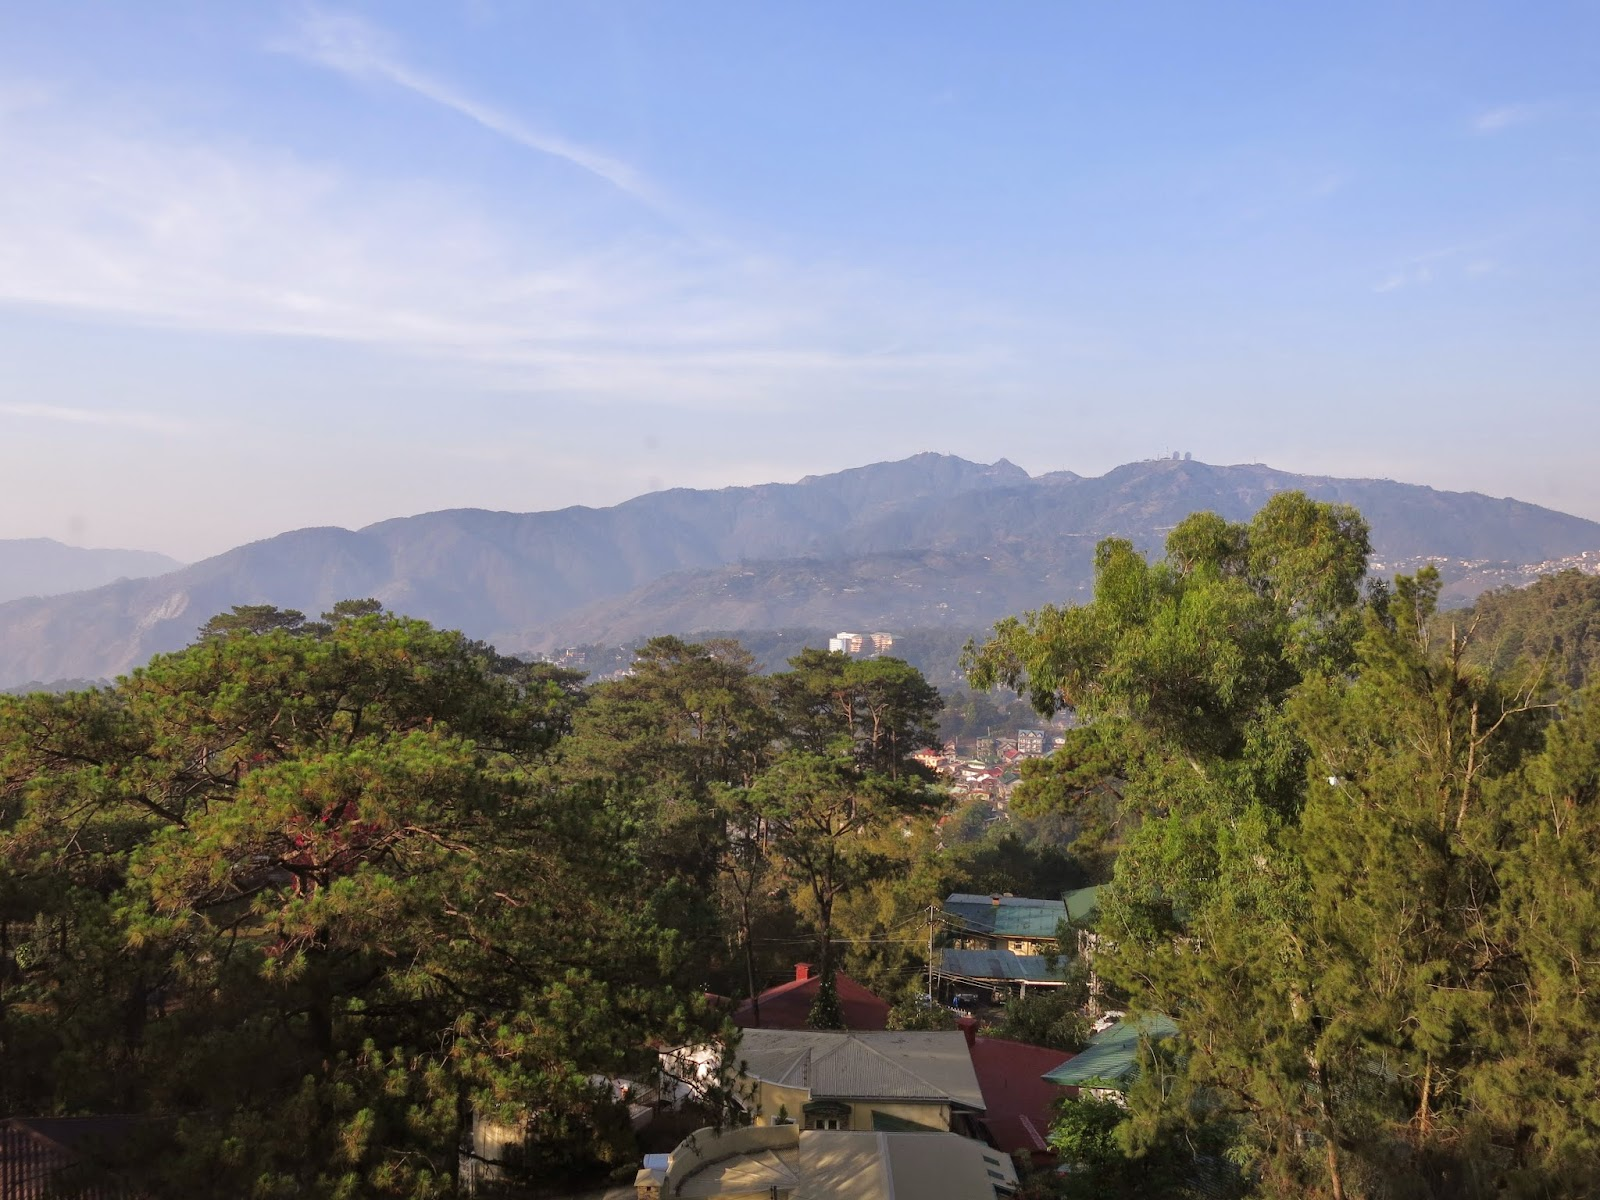 Photo of view from Chalet Baguio hotel